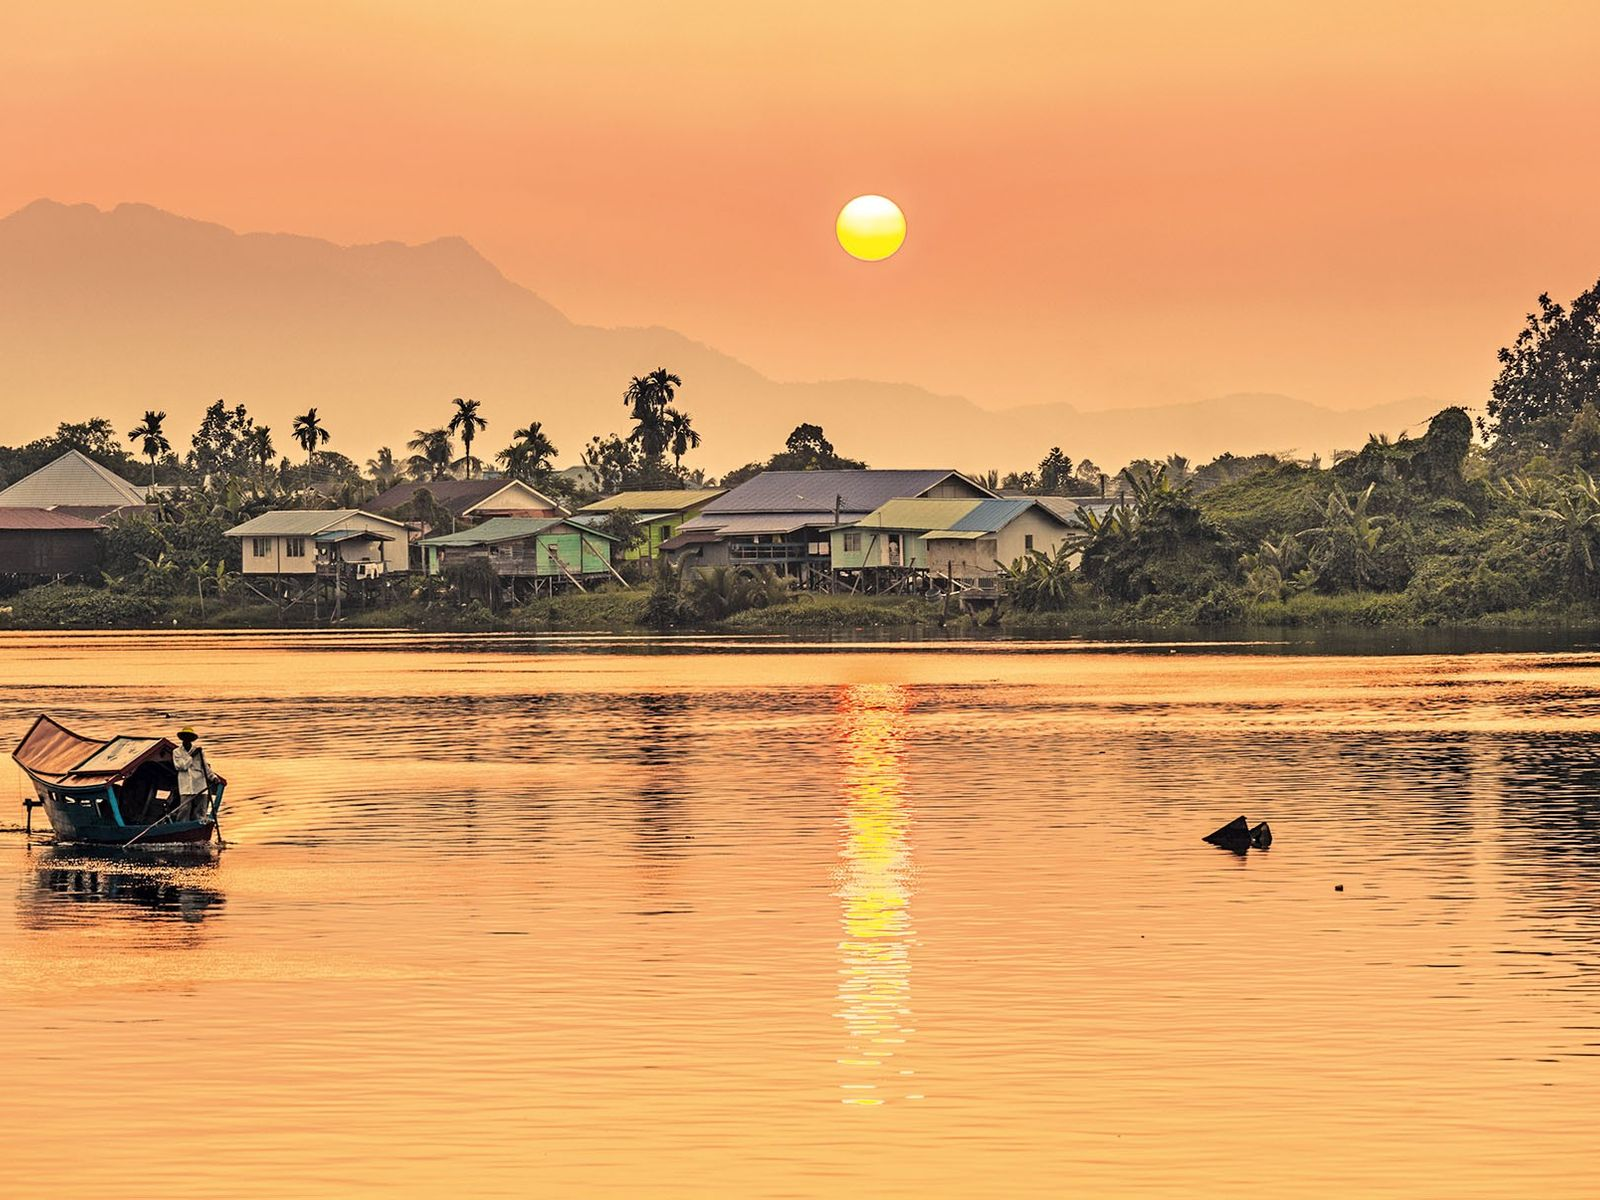 The Sarawak River runs through Kuching's centre and is an important source of water, as well ...